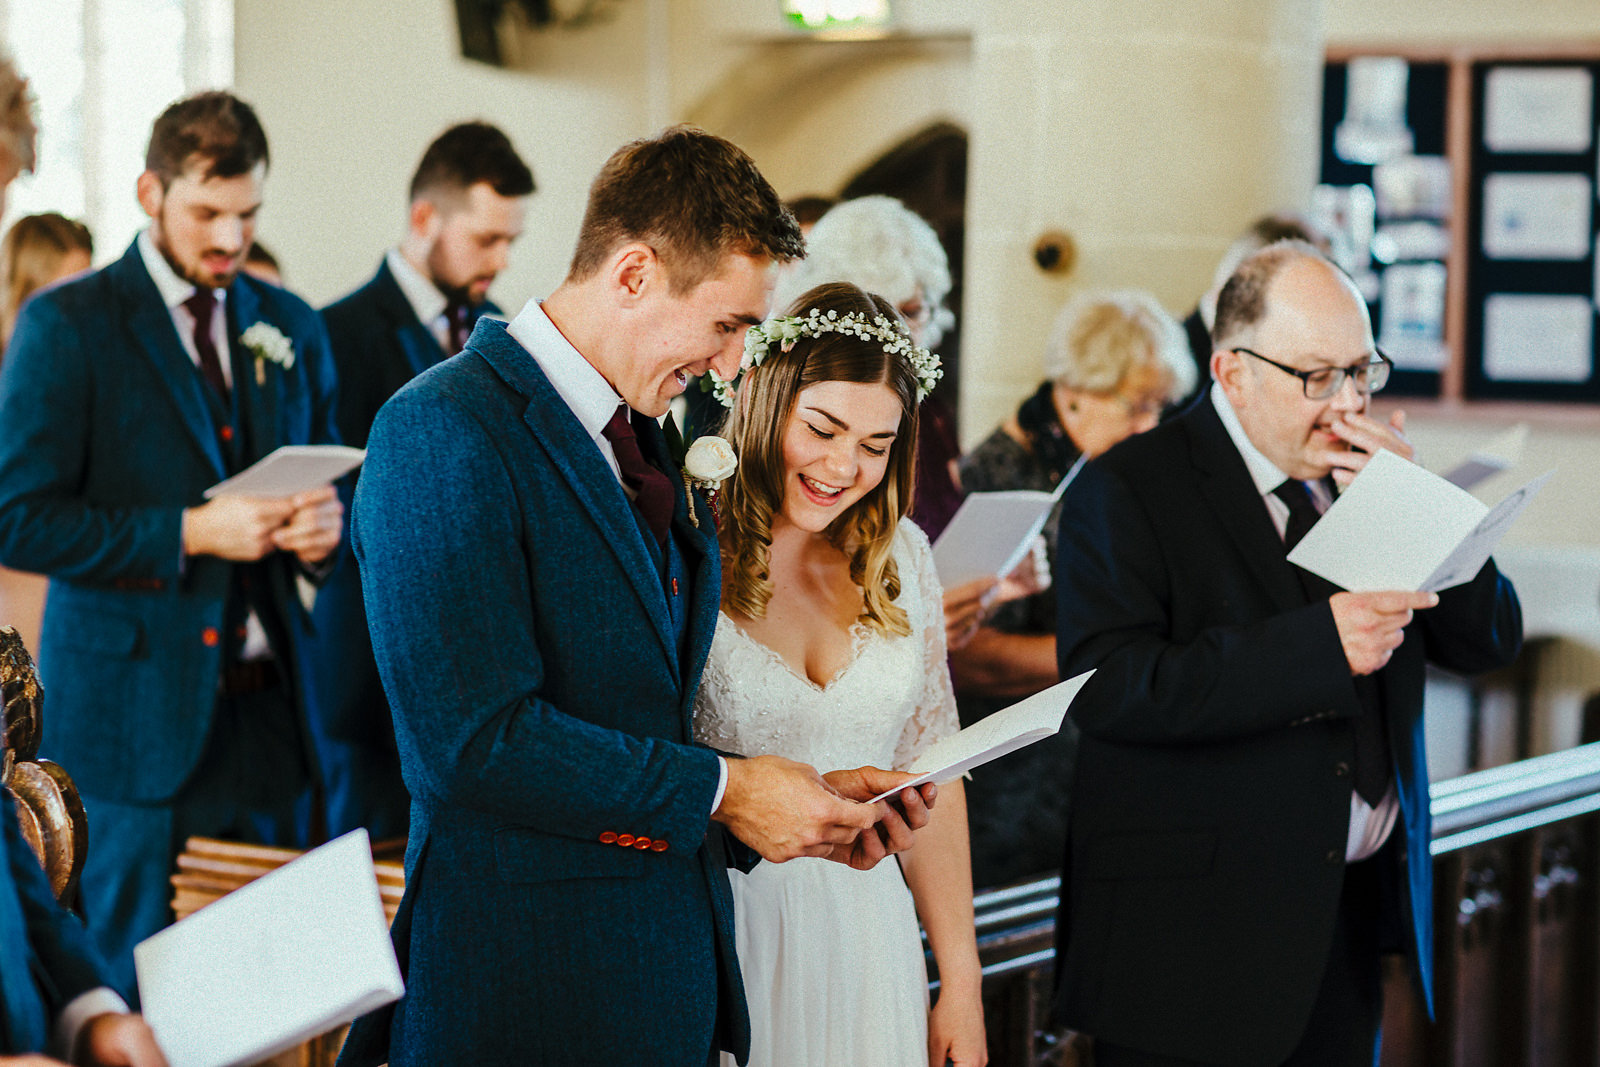 First hymn at wedding ceremony